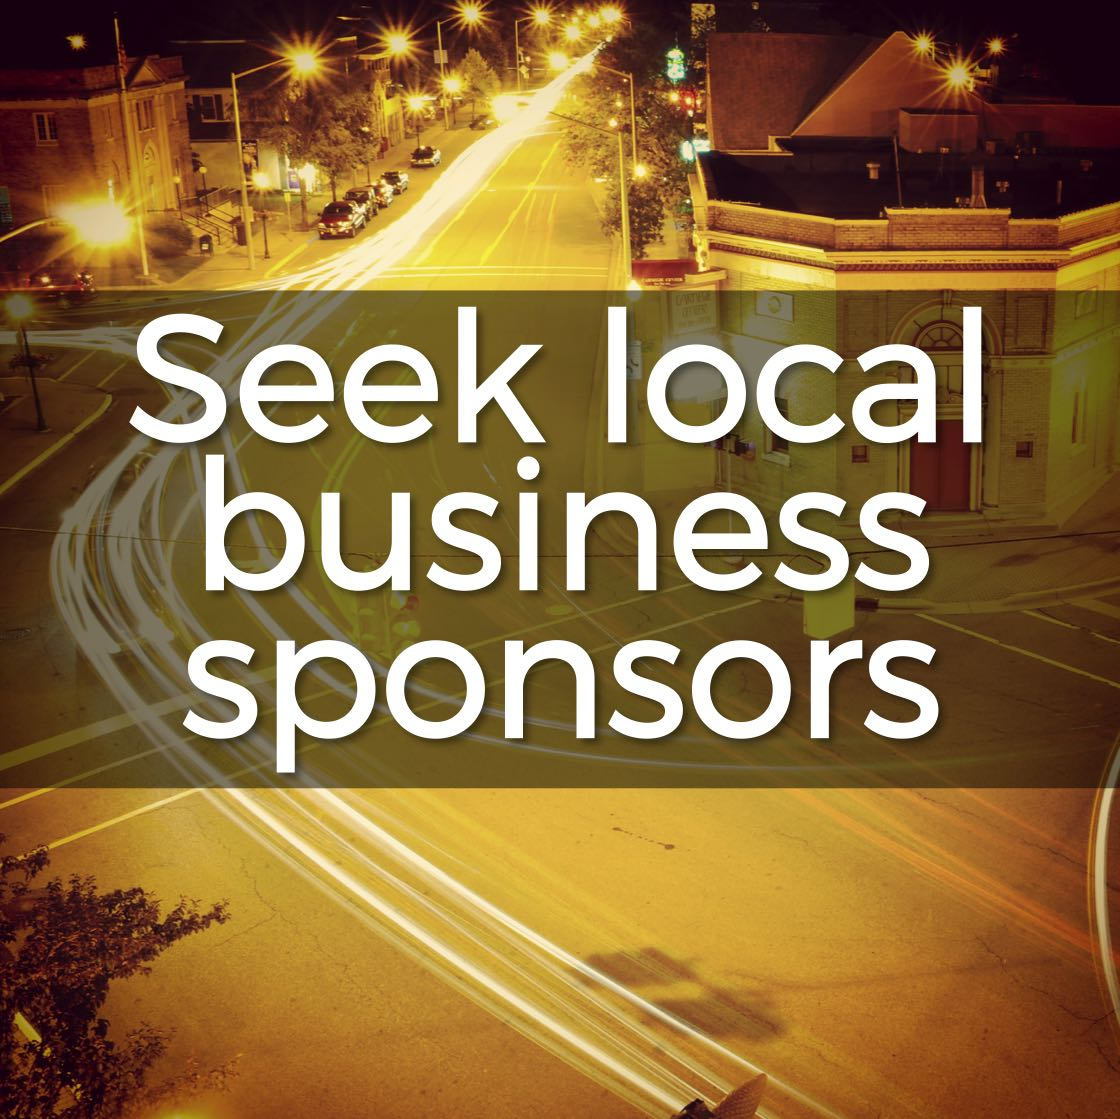 Here's how to find local business sponsors to help support your mission trip